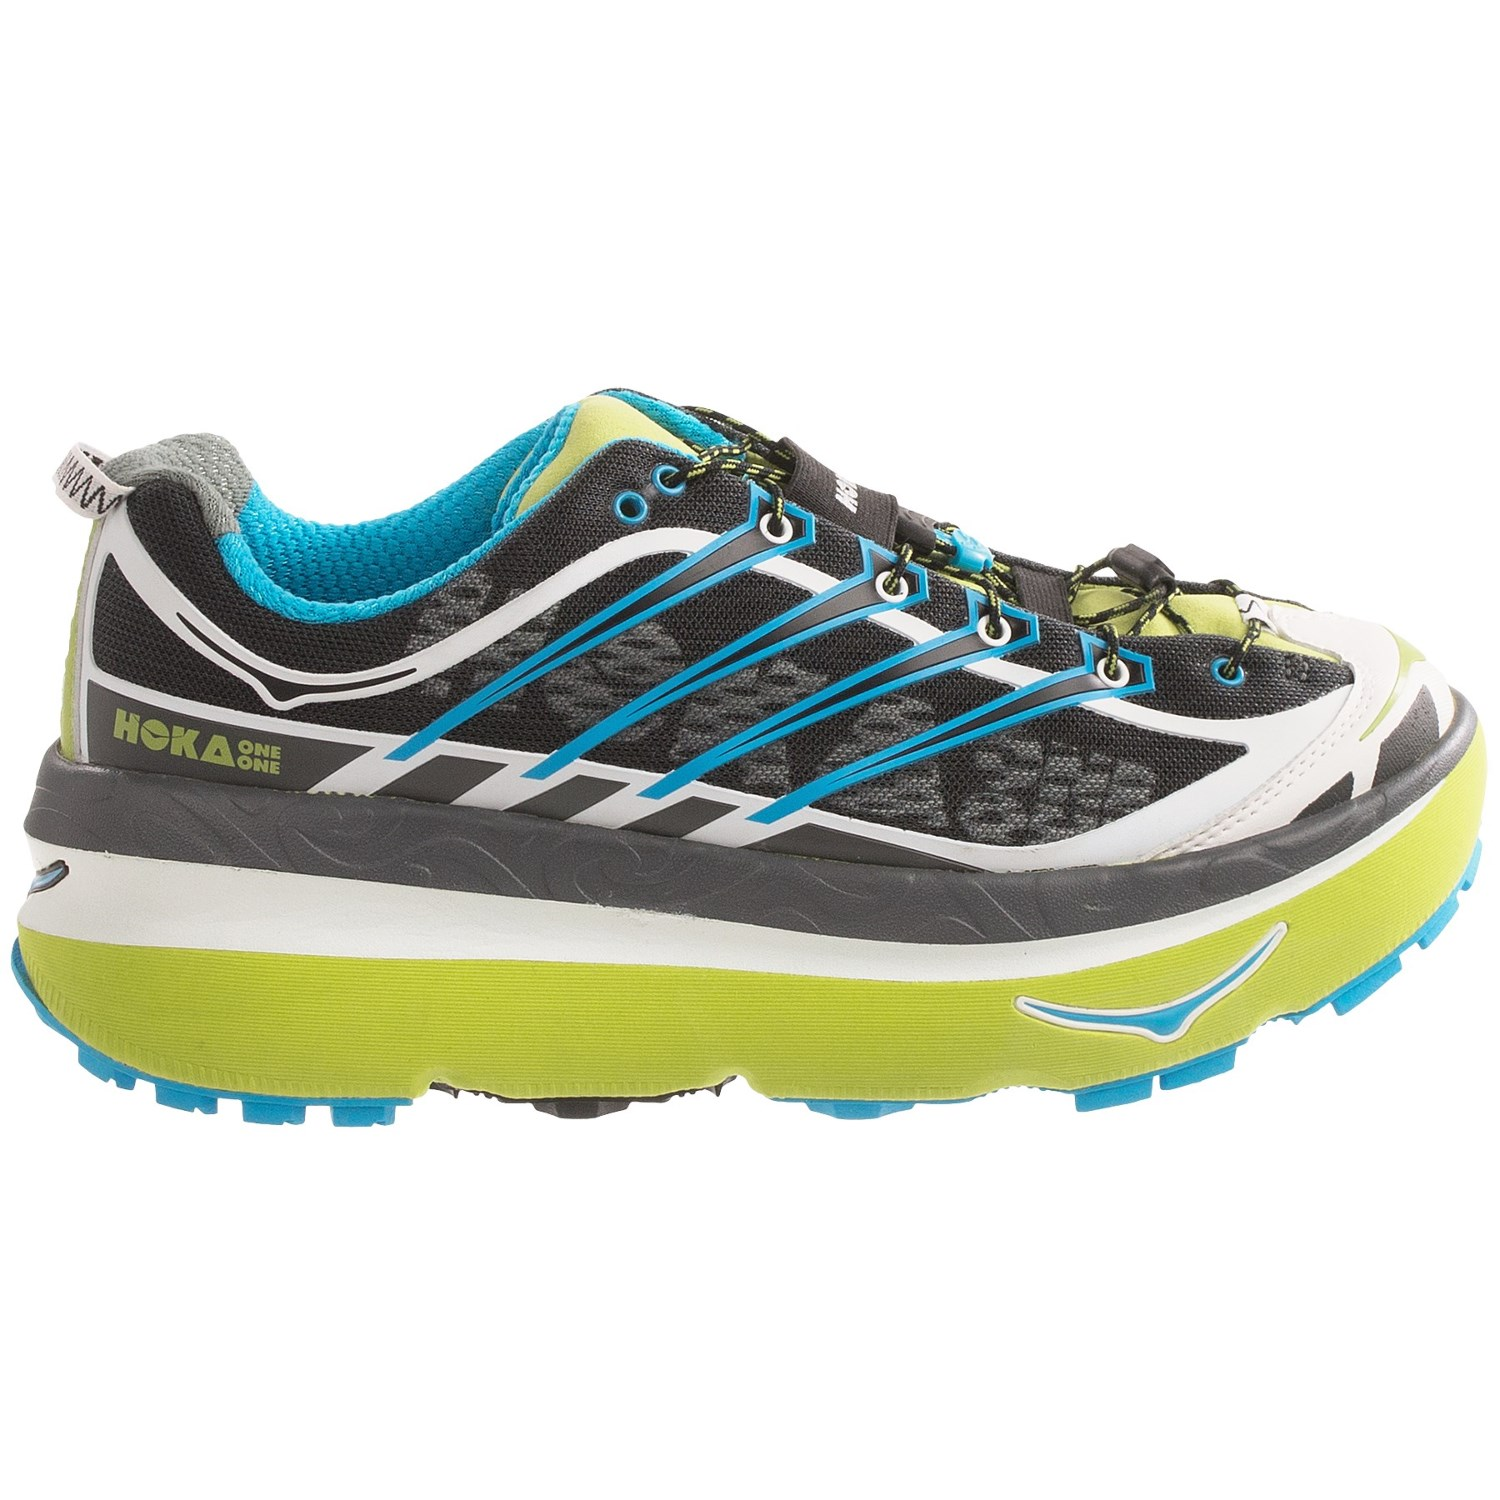 Hoka One One Trail Running Shoes Review